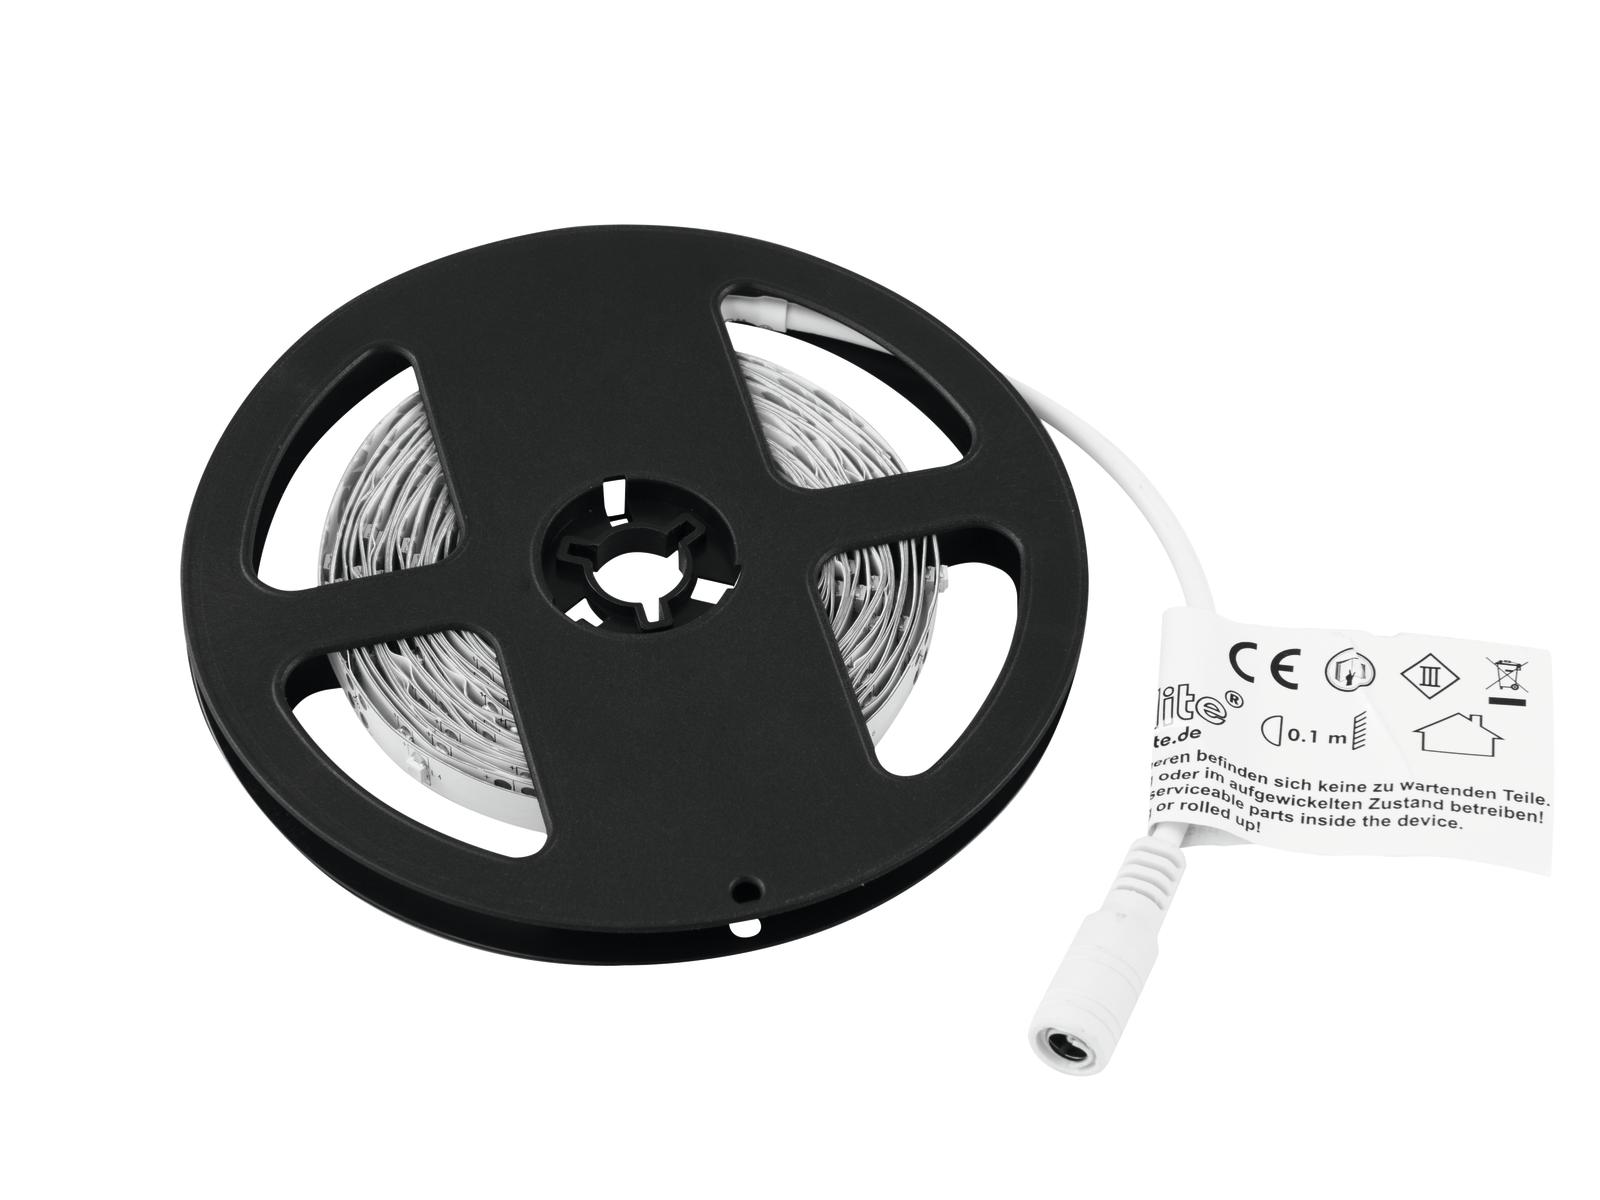 EUROLITE LED Strip 150 5m 3528 bianco caldo 3000K 12V